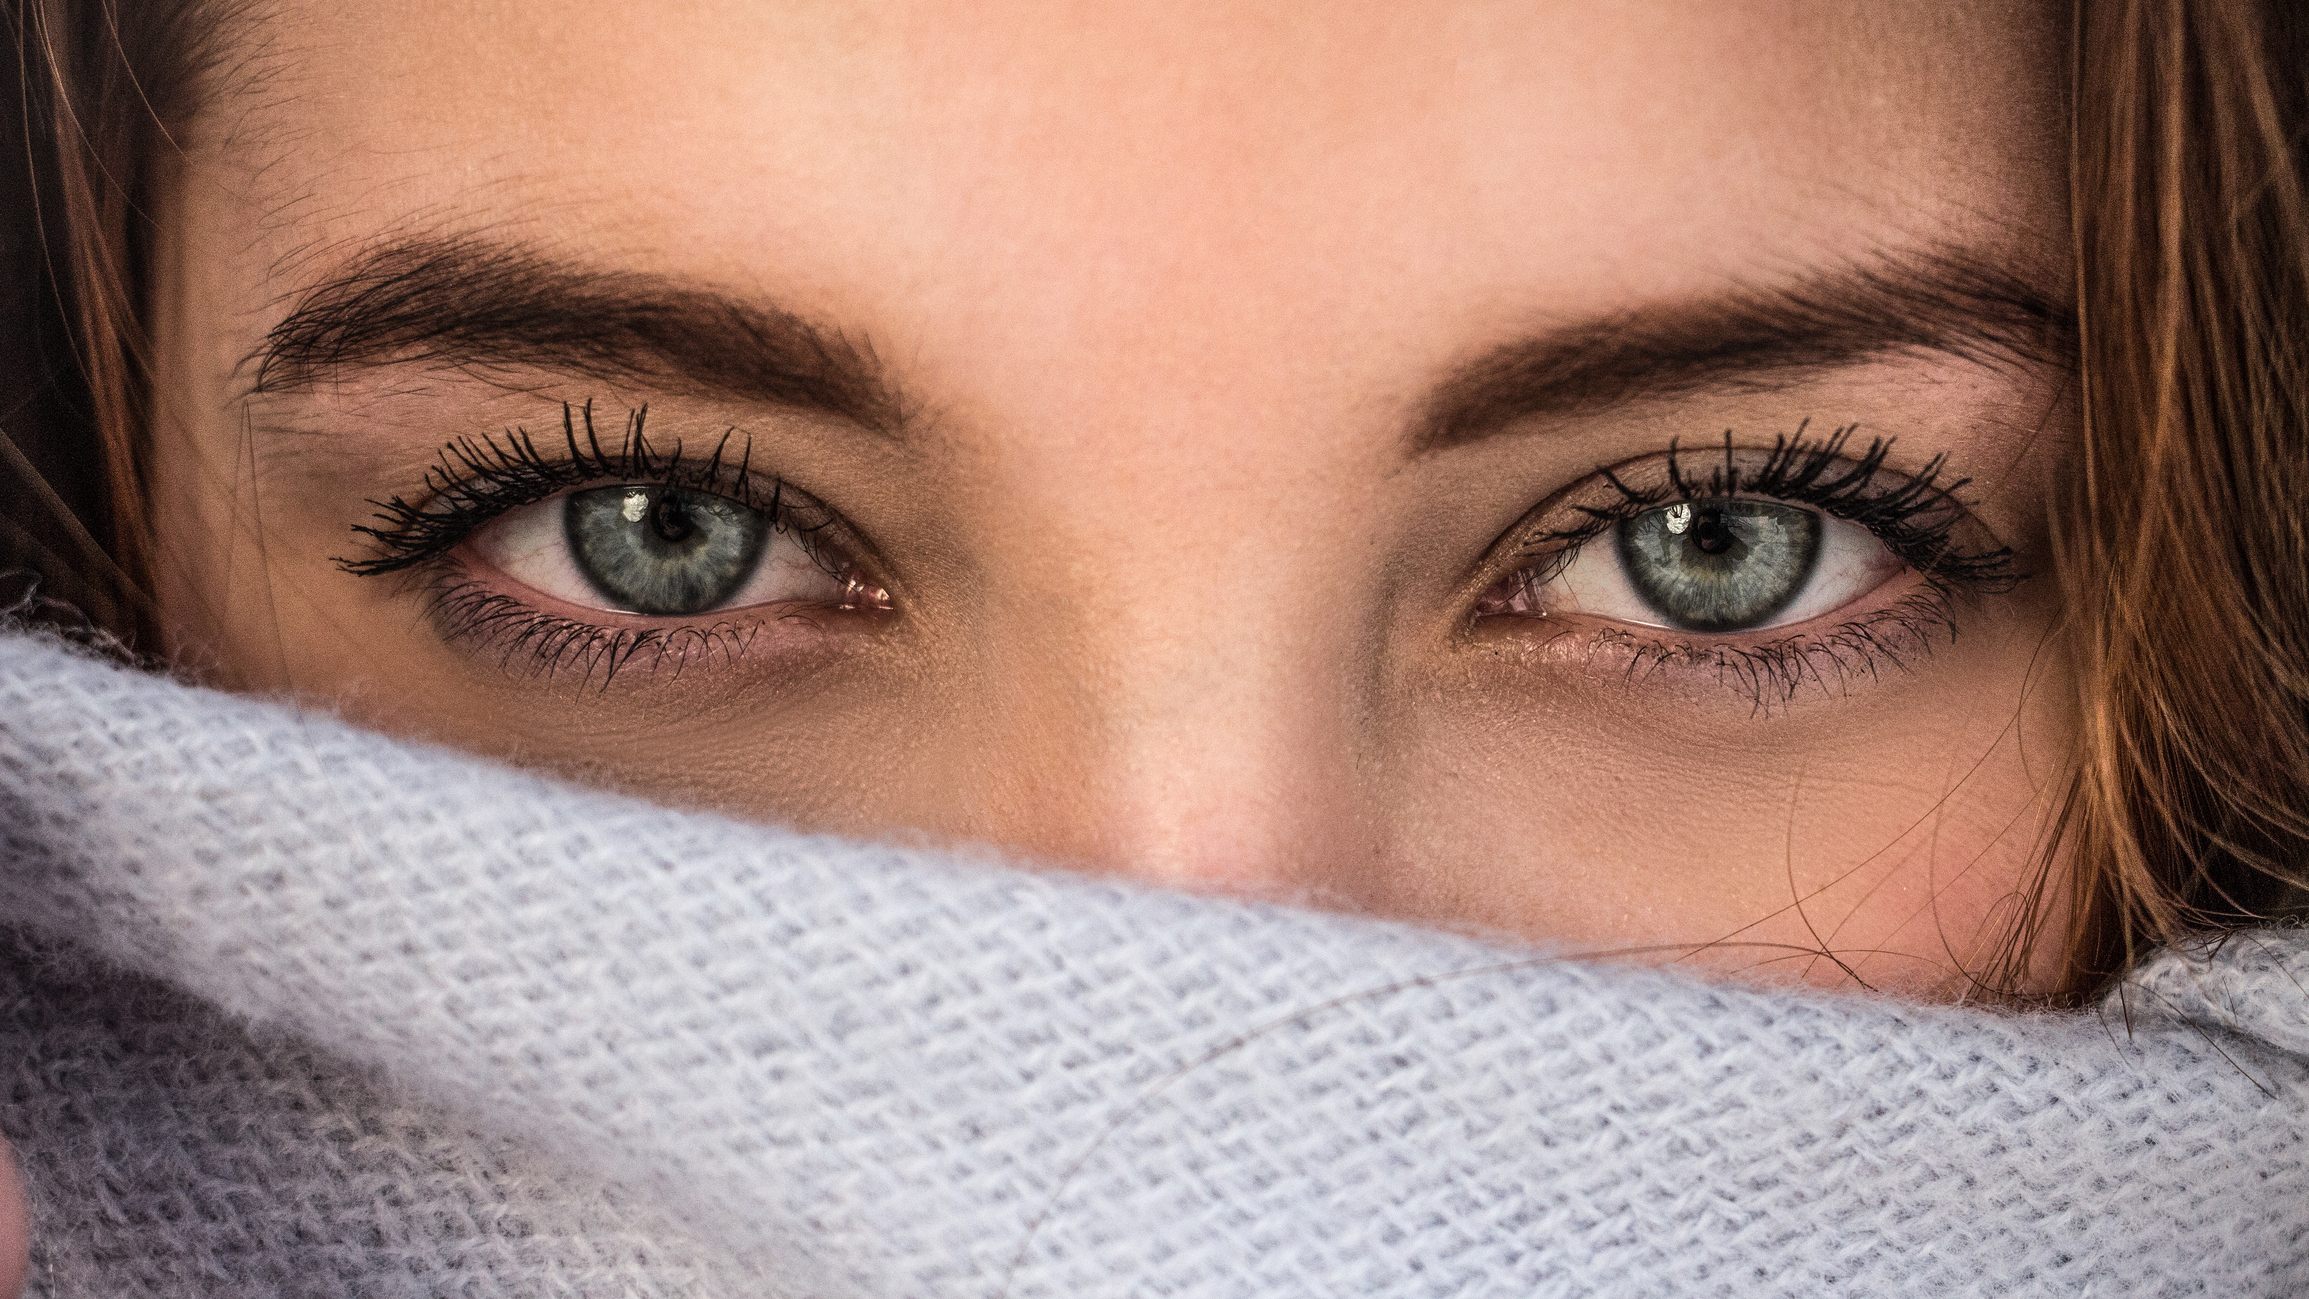 eyebrow tinting - how to tint eyebrows at home